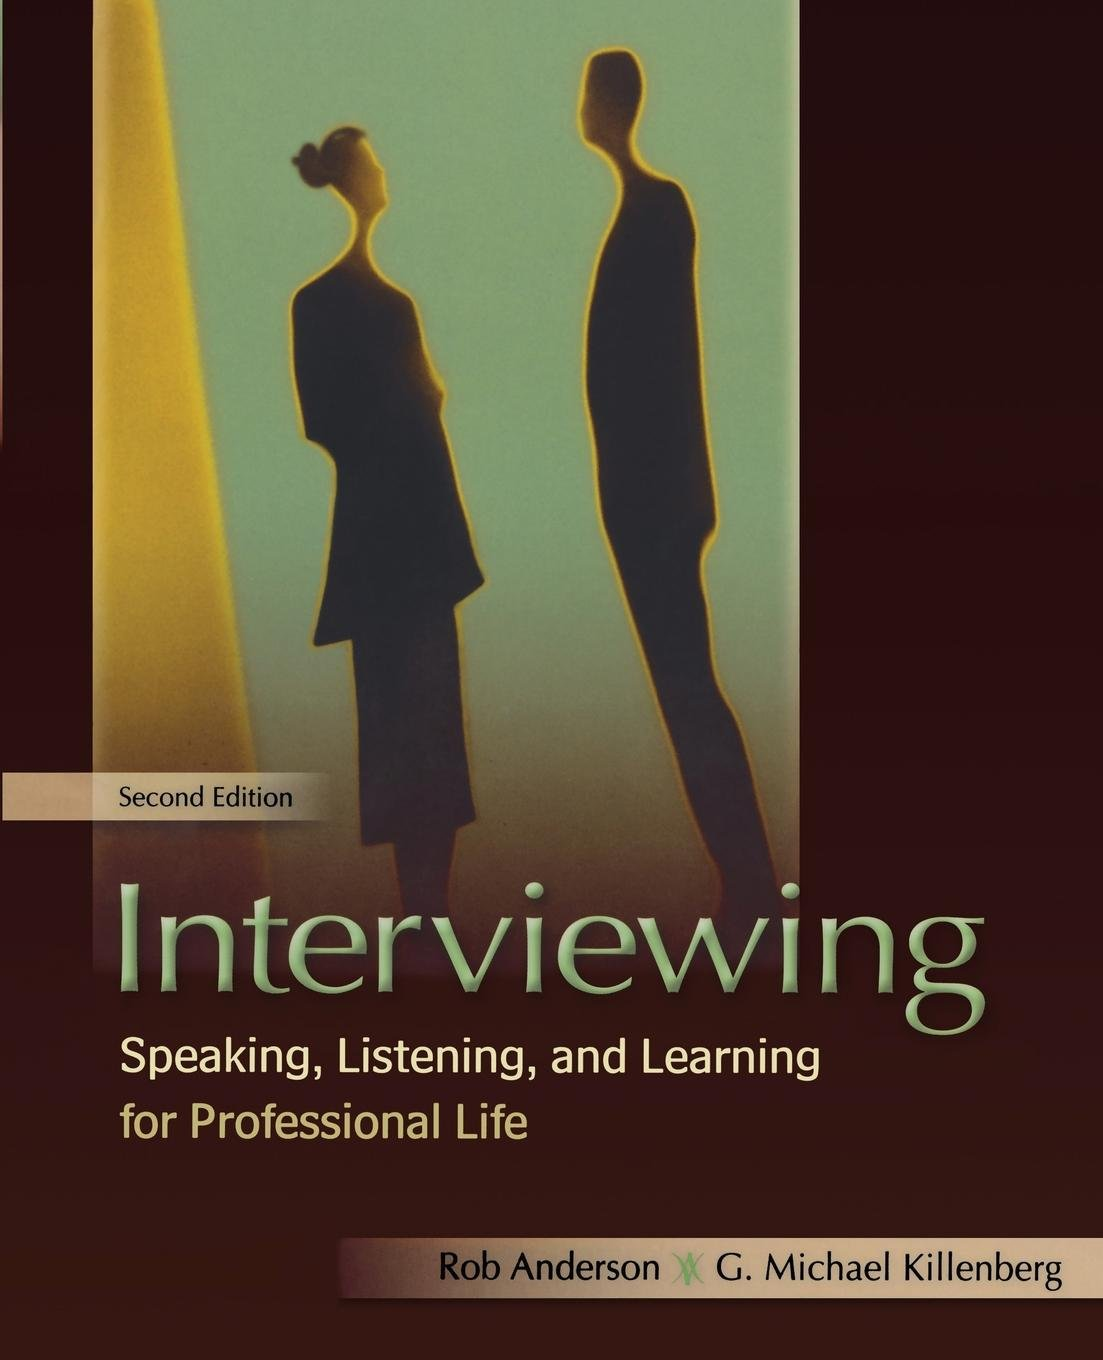 Interviewing: Speaking, Listening, and Learning for Professional Life by Oxford University Press